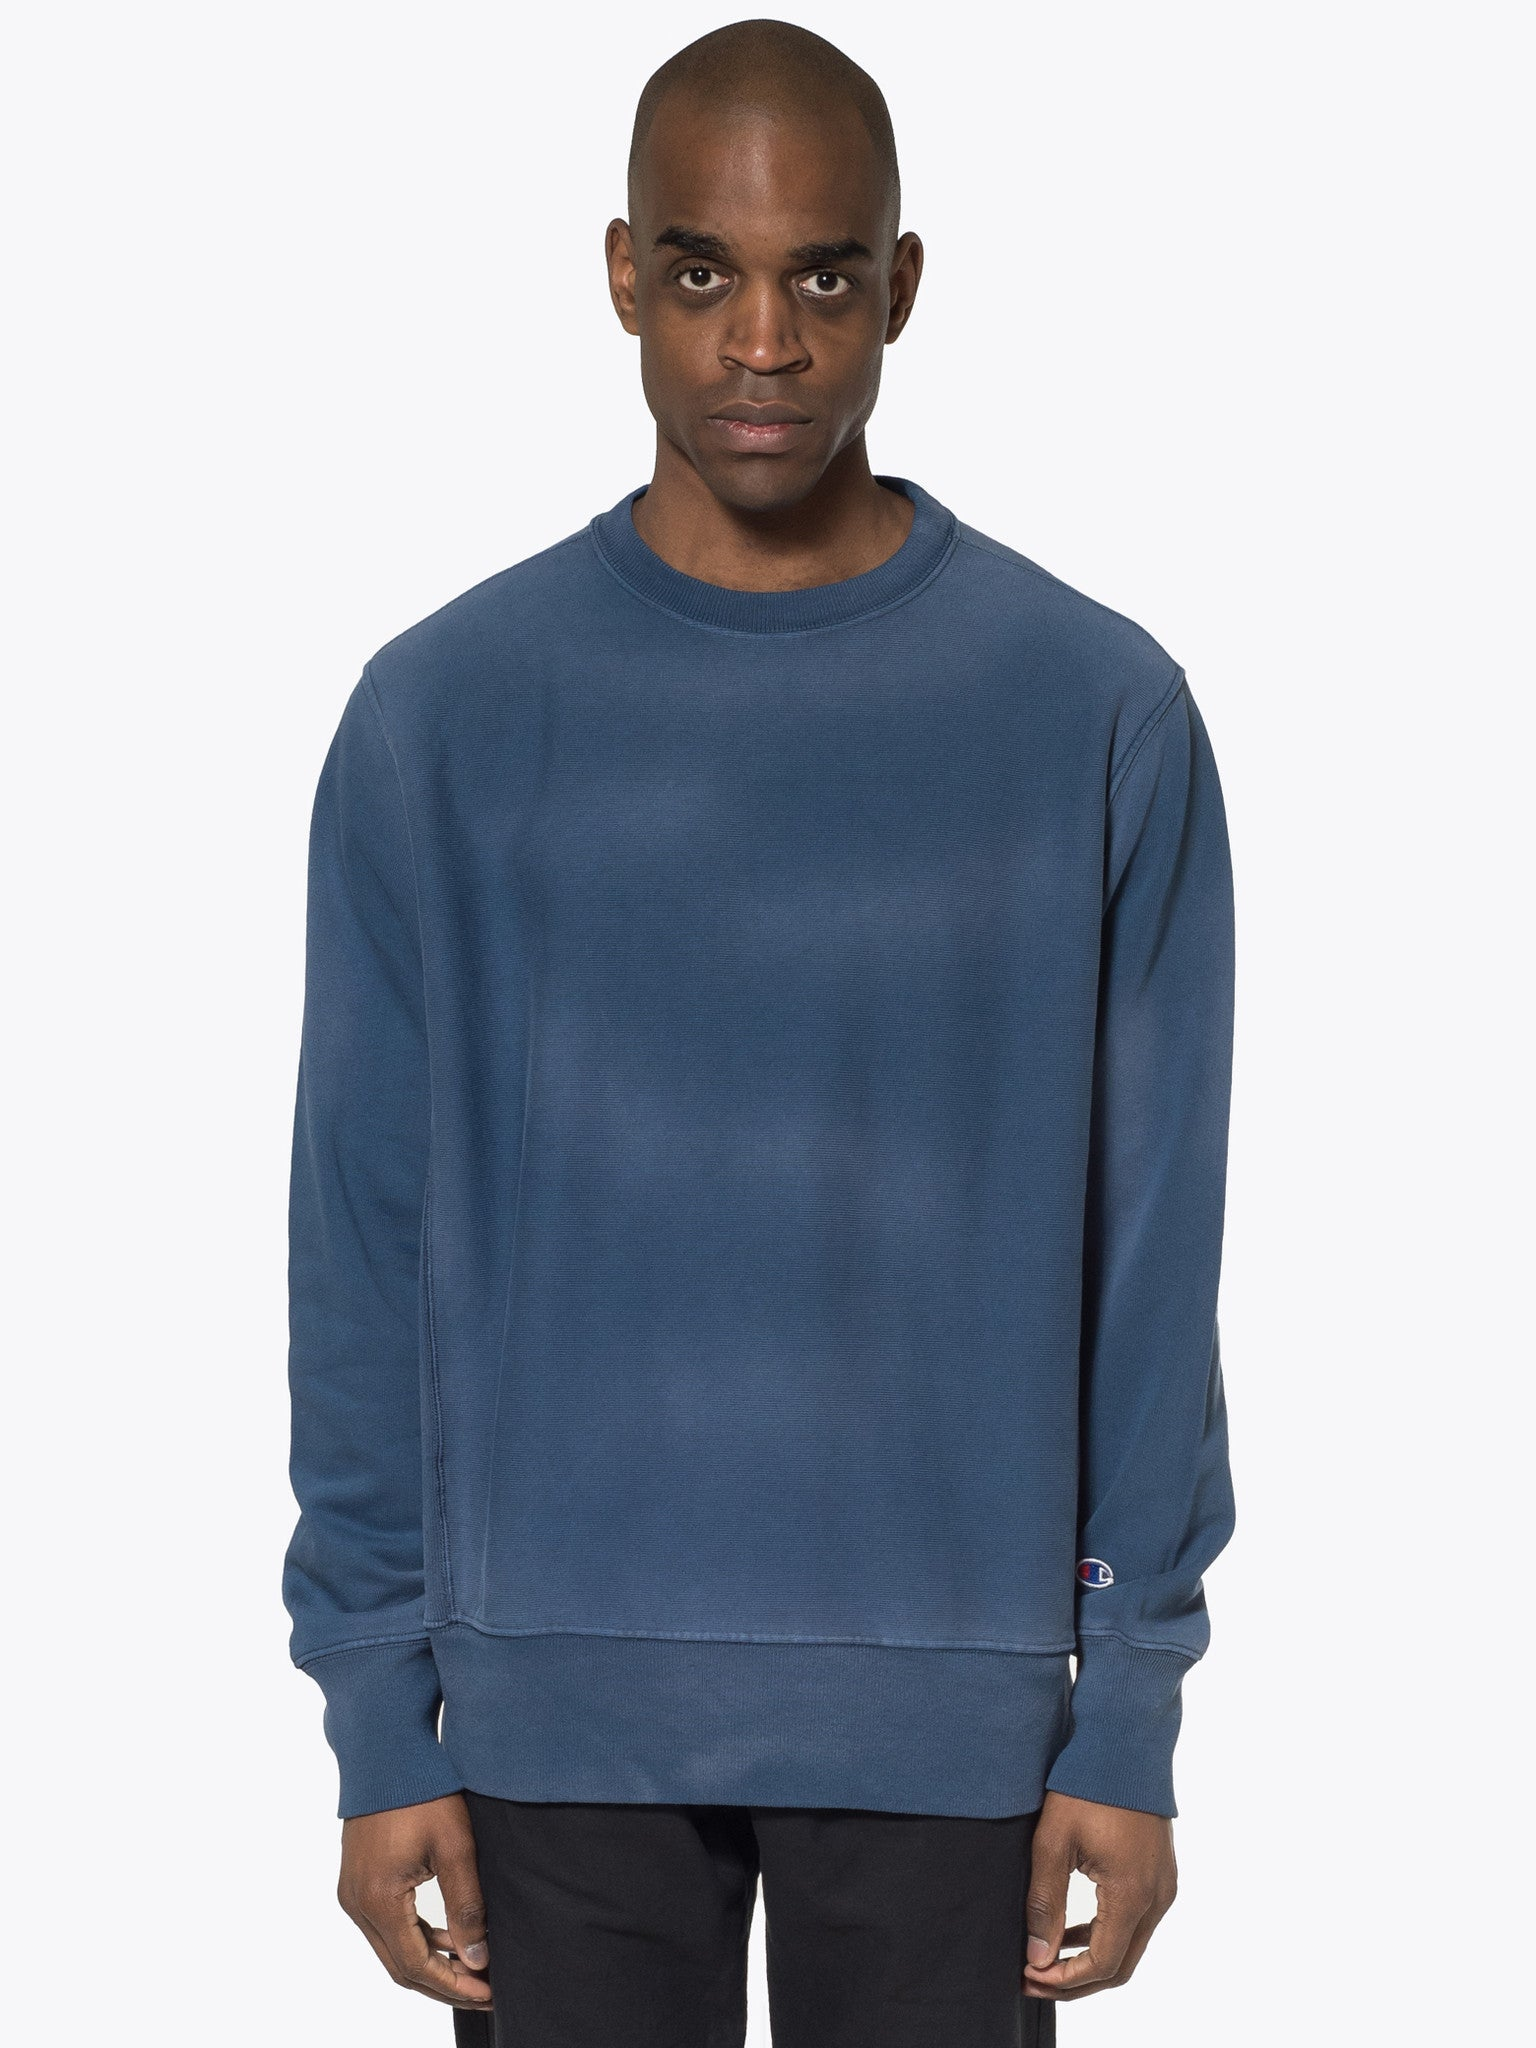 Enzyme Washed Classic Crewneck